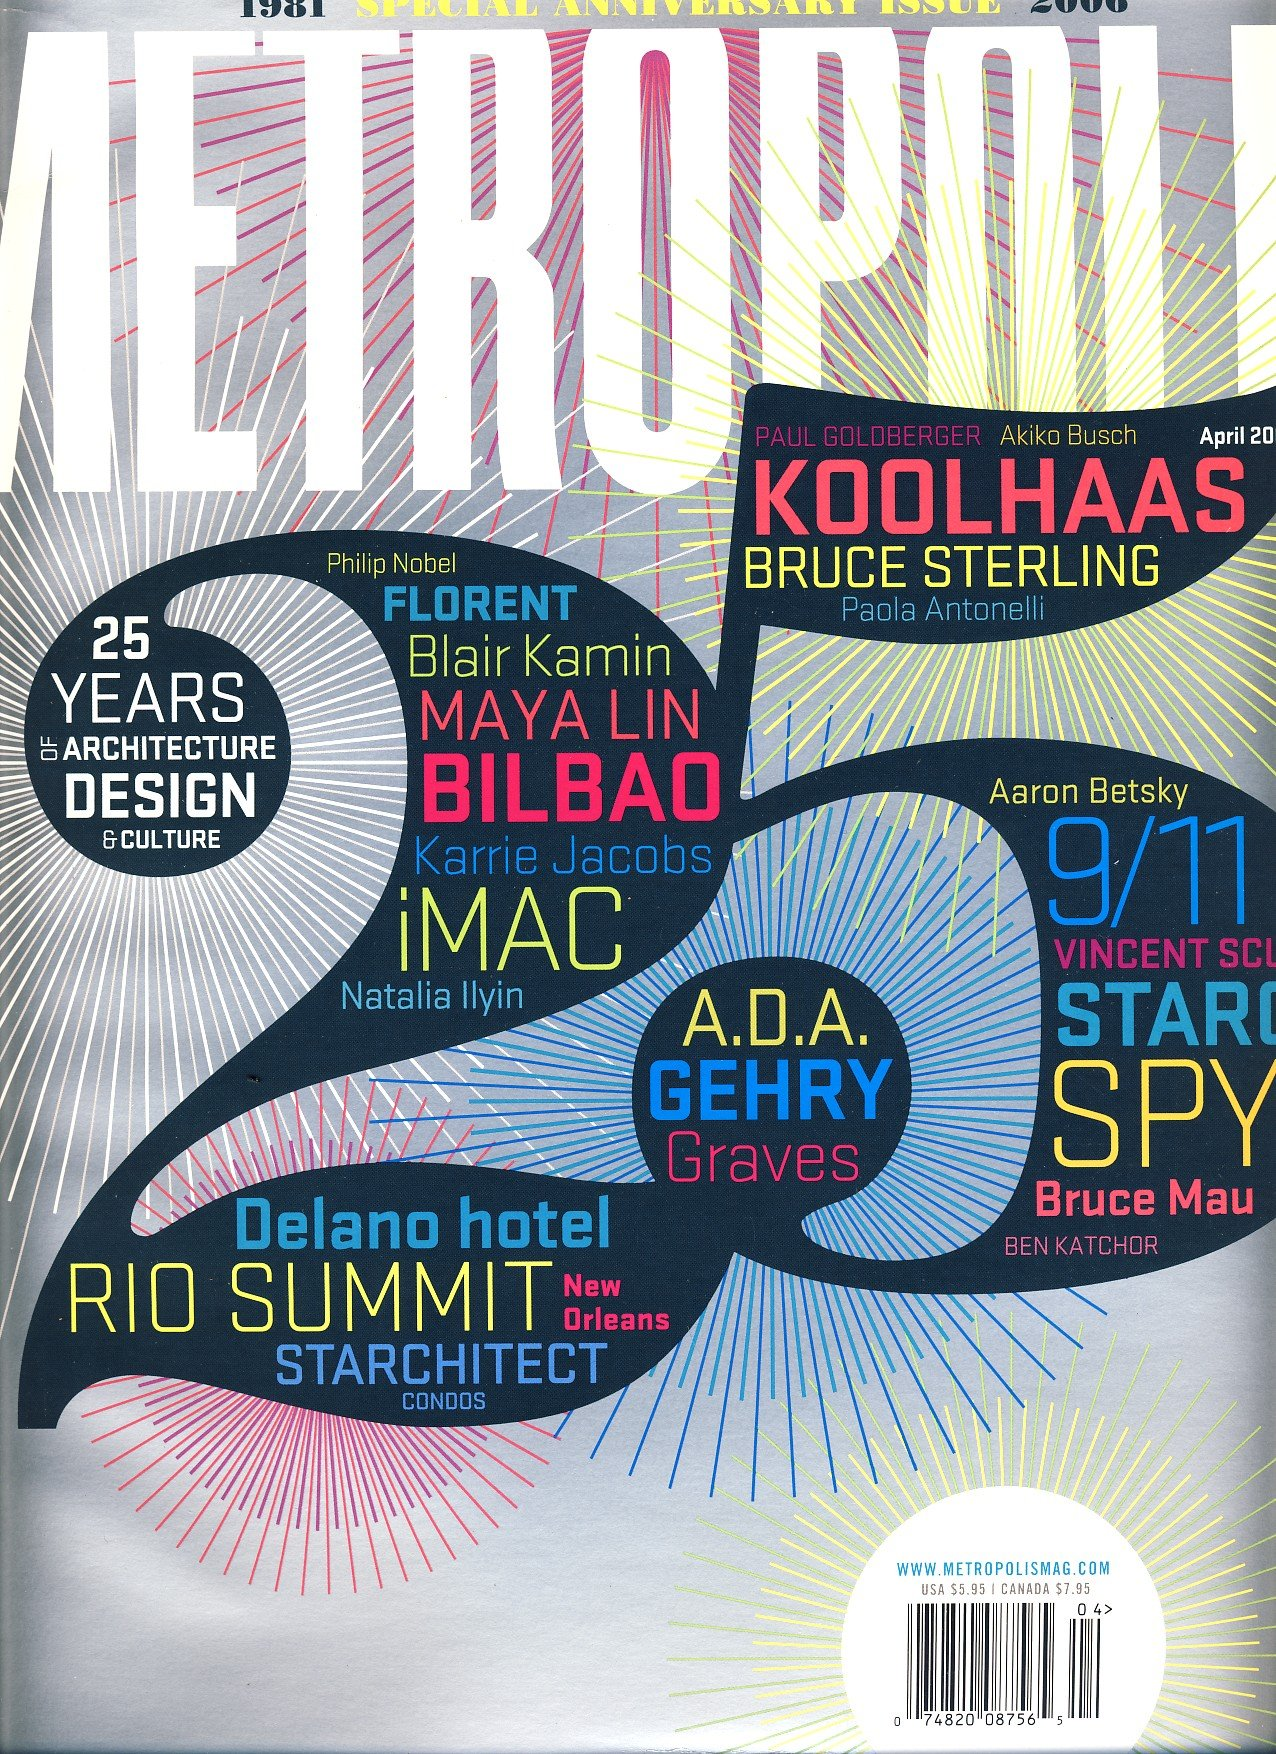 Metropolis Magazine April 2006 (25th Anniversary Issue- 25 Years of Architecture, Design and Culture)